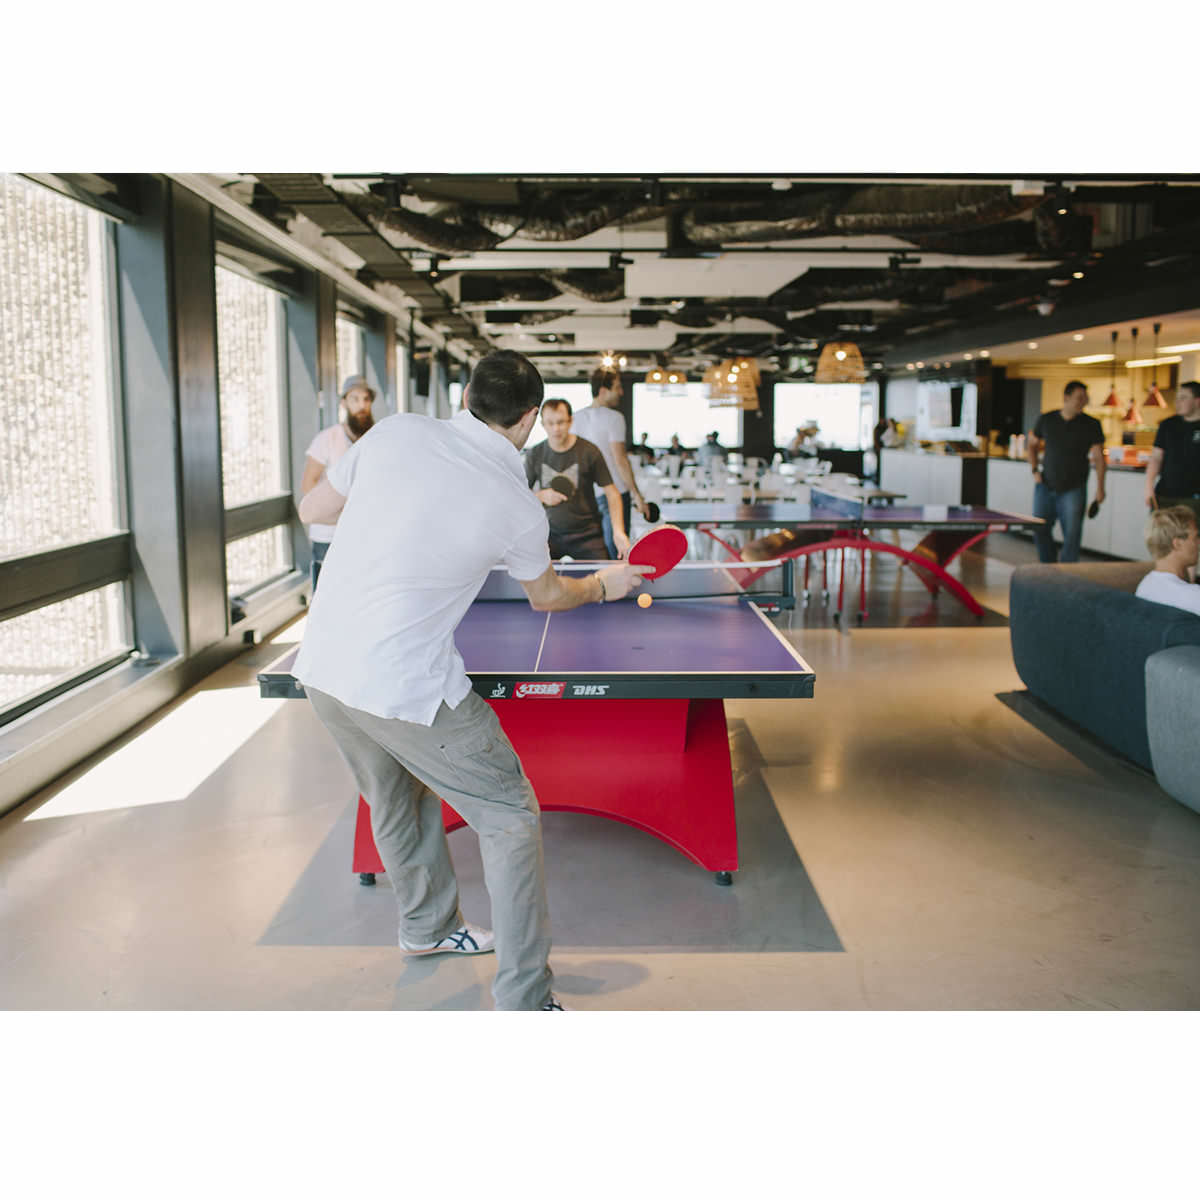 Annual Report - Giving Back - Ping Pong